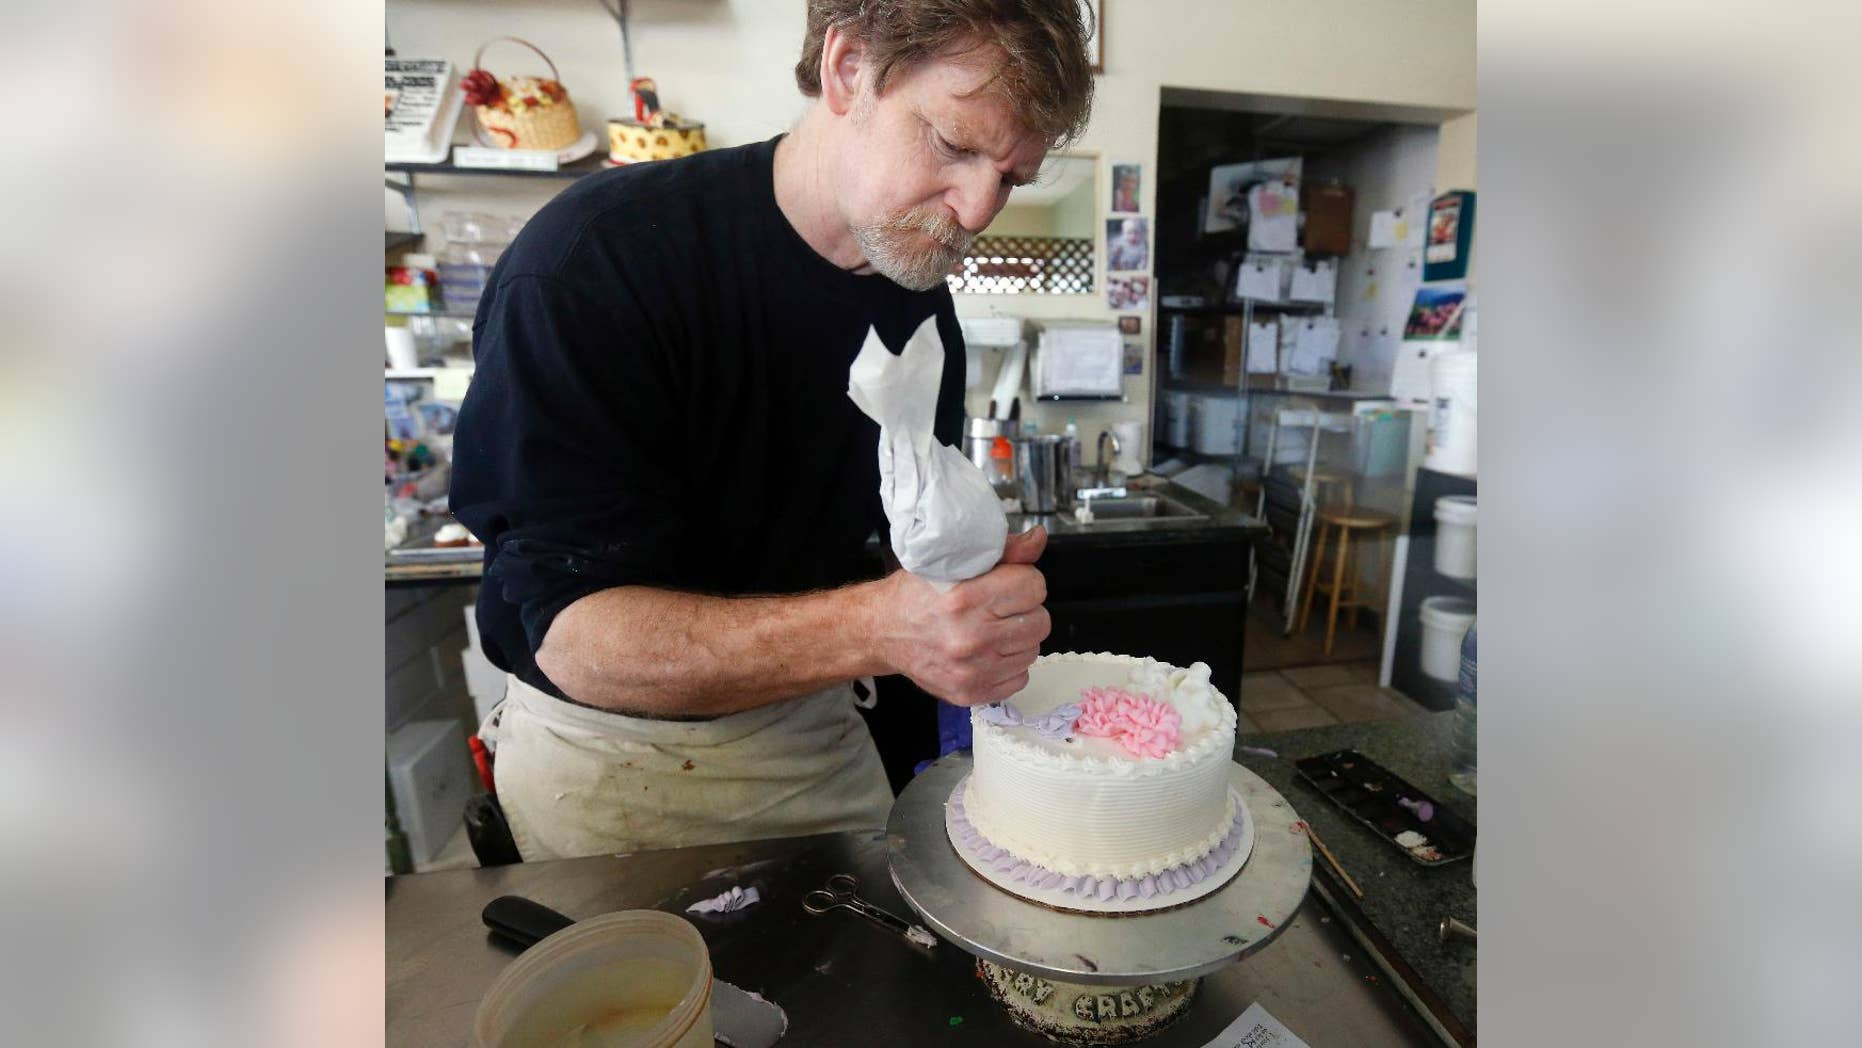 In this March 10, 2014, file photo, Masterpiece Cakeshop owner Jack Phillips decorates a cake inside his store in Lakewood, Colo. Colorado's Supreme Court has refused to take up the case of Phillips, who would not make a wedding cake for a same-sex couple. (AP Photo/Brennan Linsley, File)